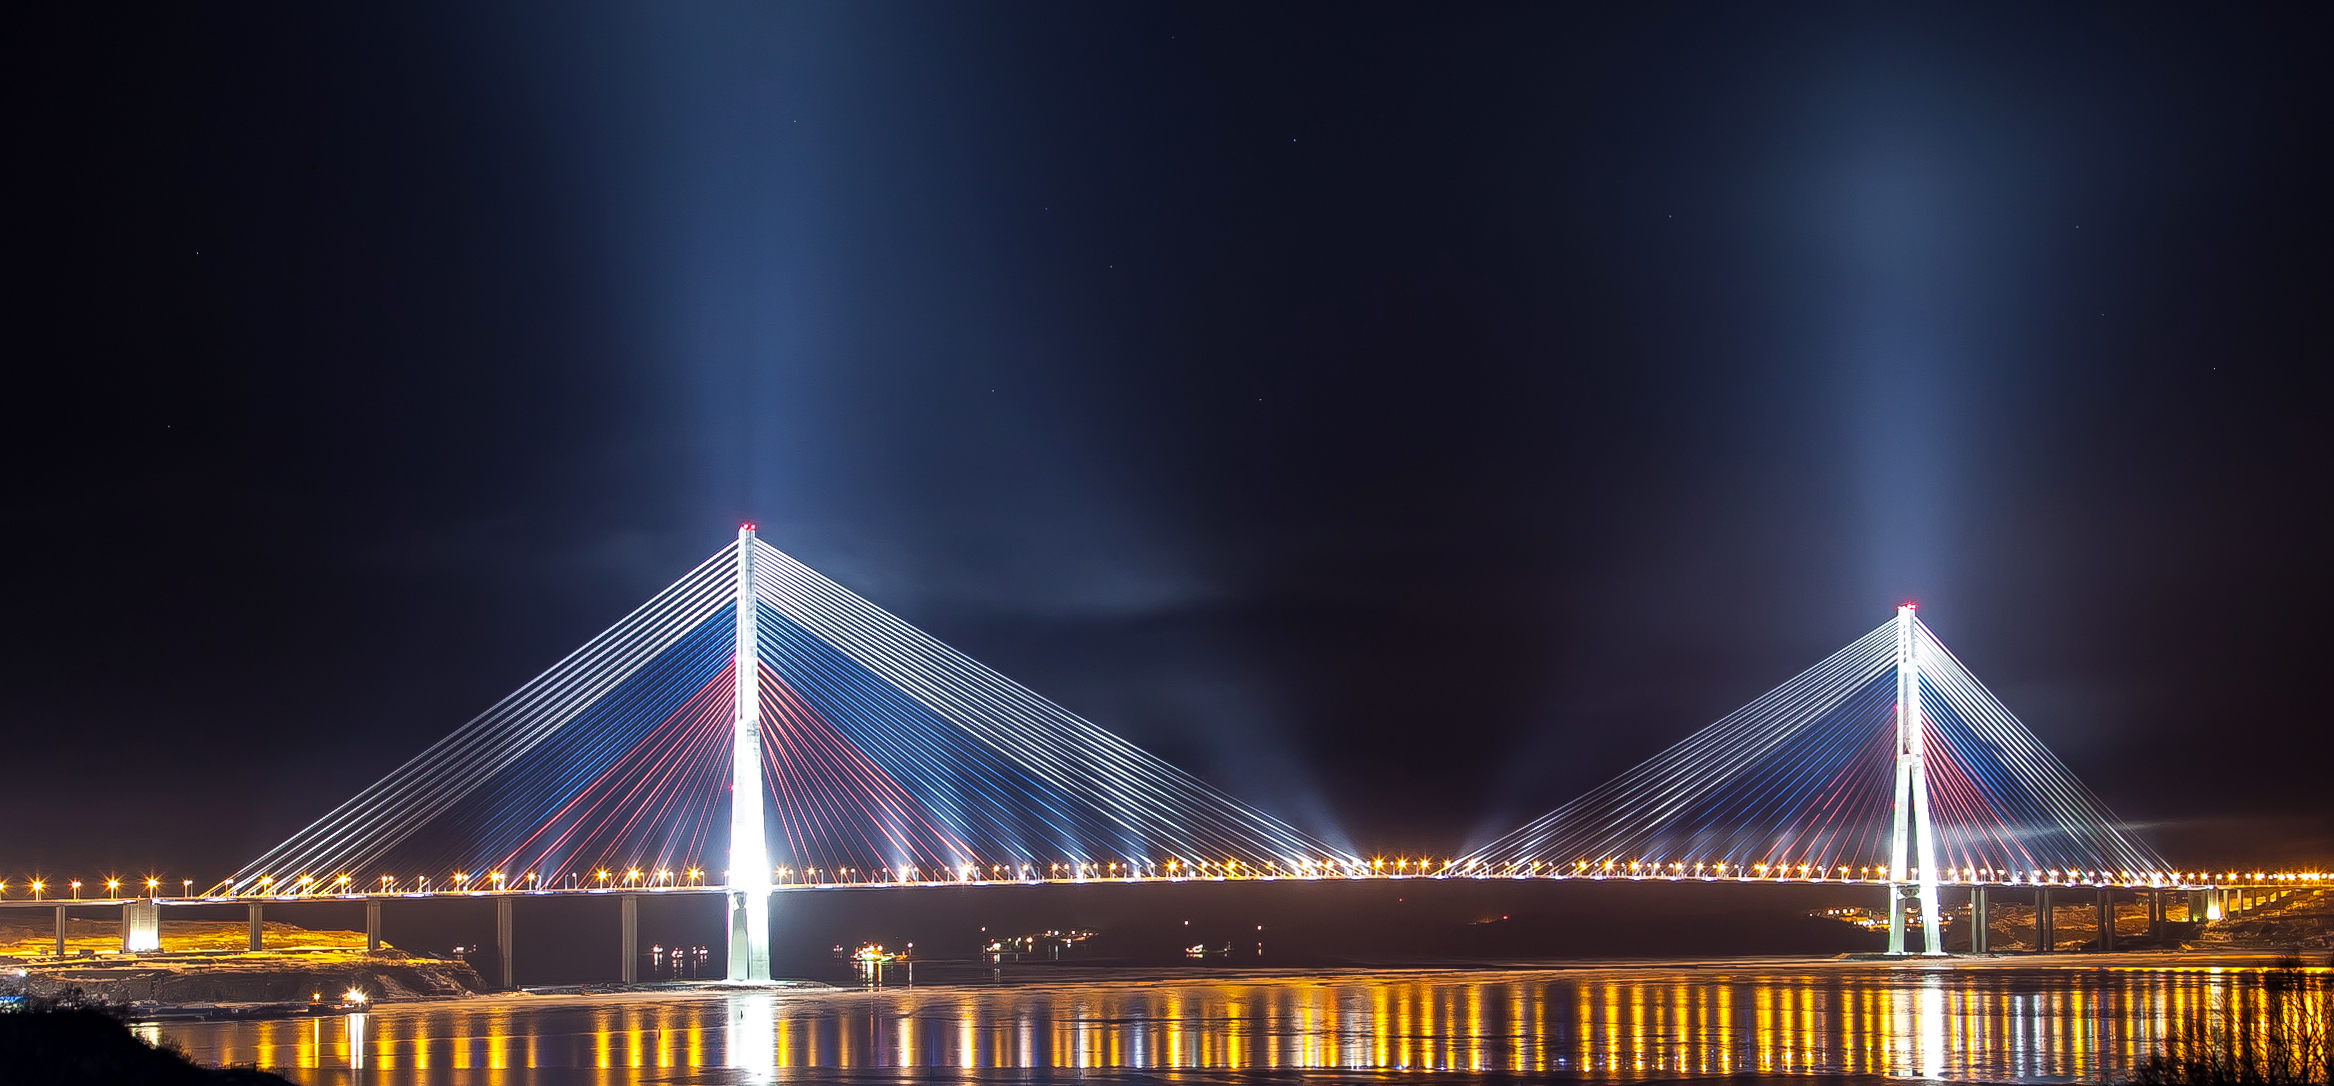 https://upload.wikimedia.org/wikipedia/commons/e/eb/%22Russian_bridge%22_in_Vladivostok.jpg